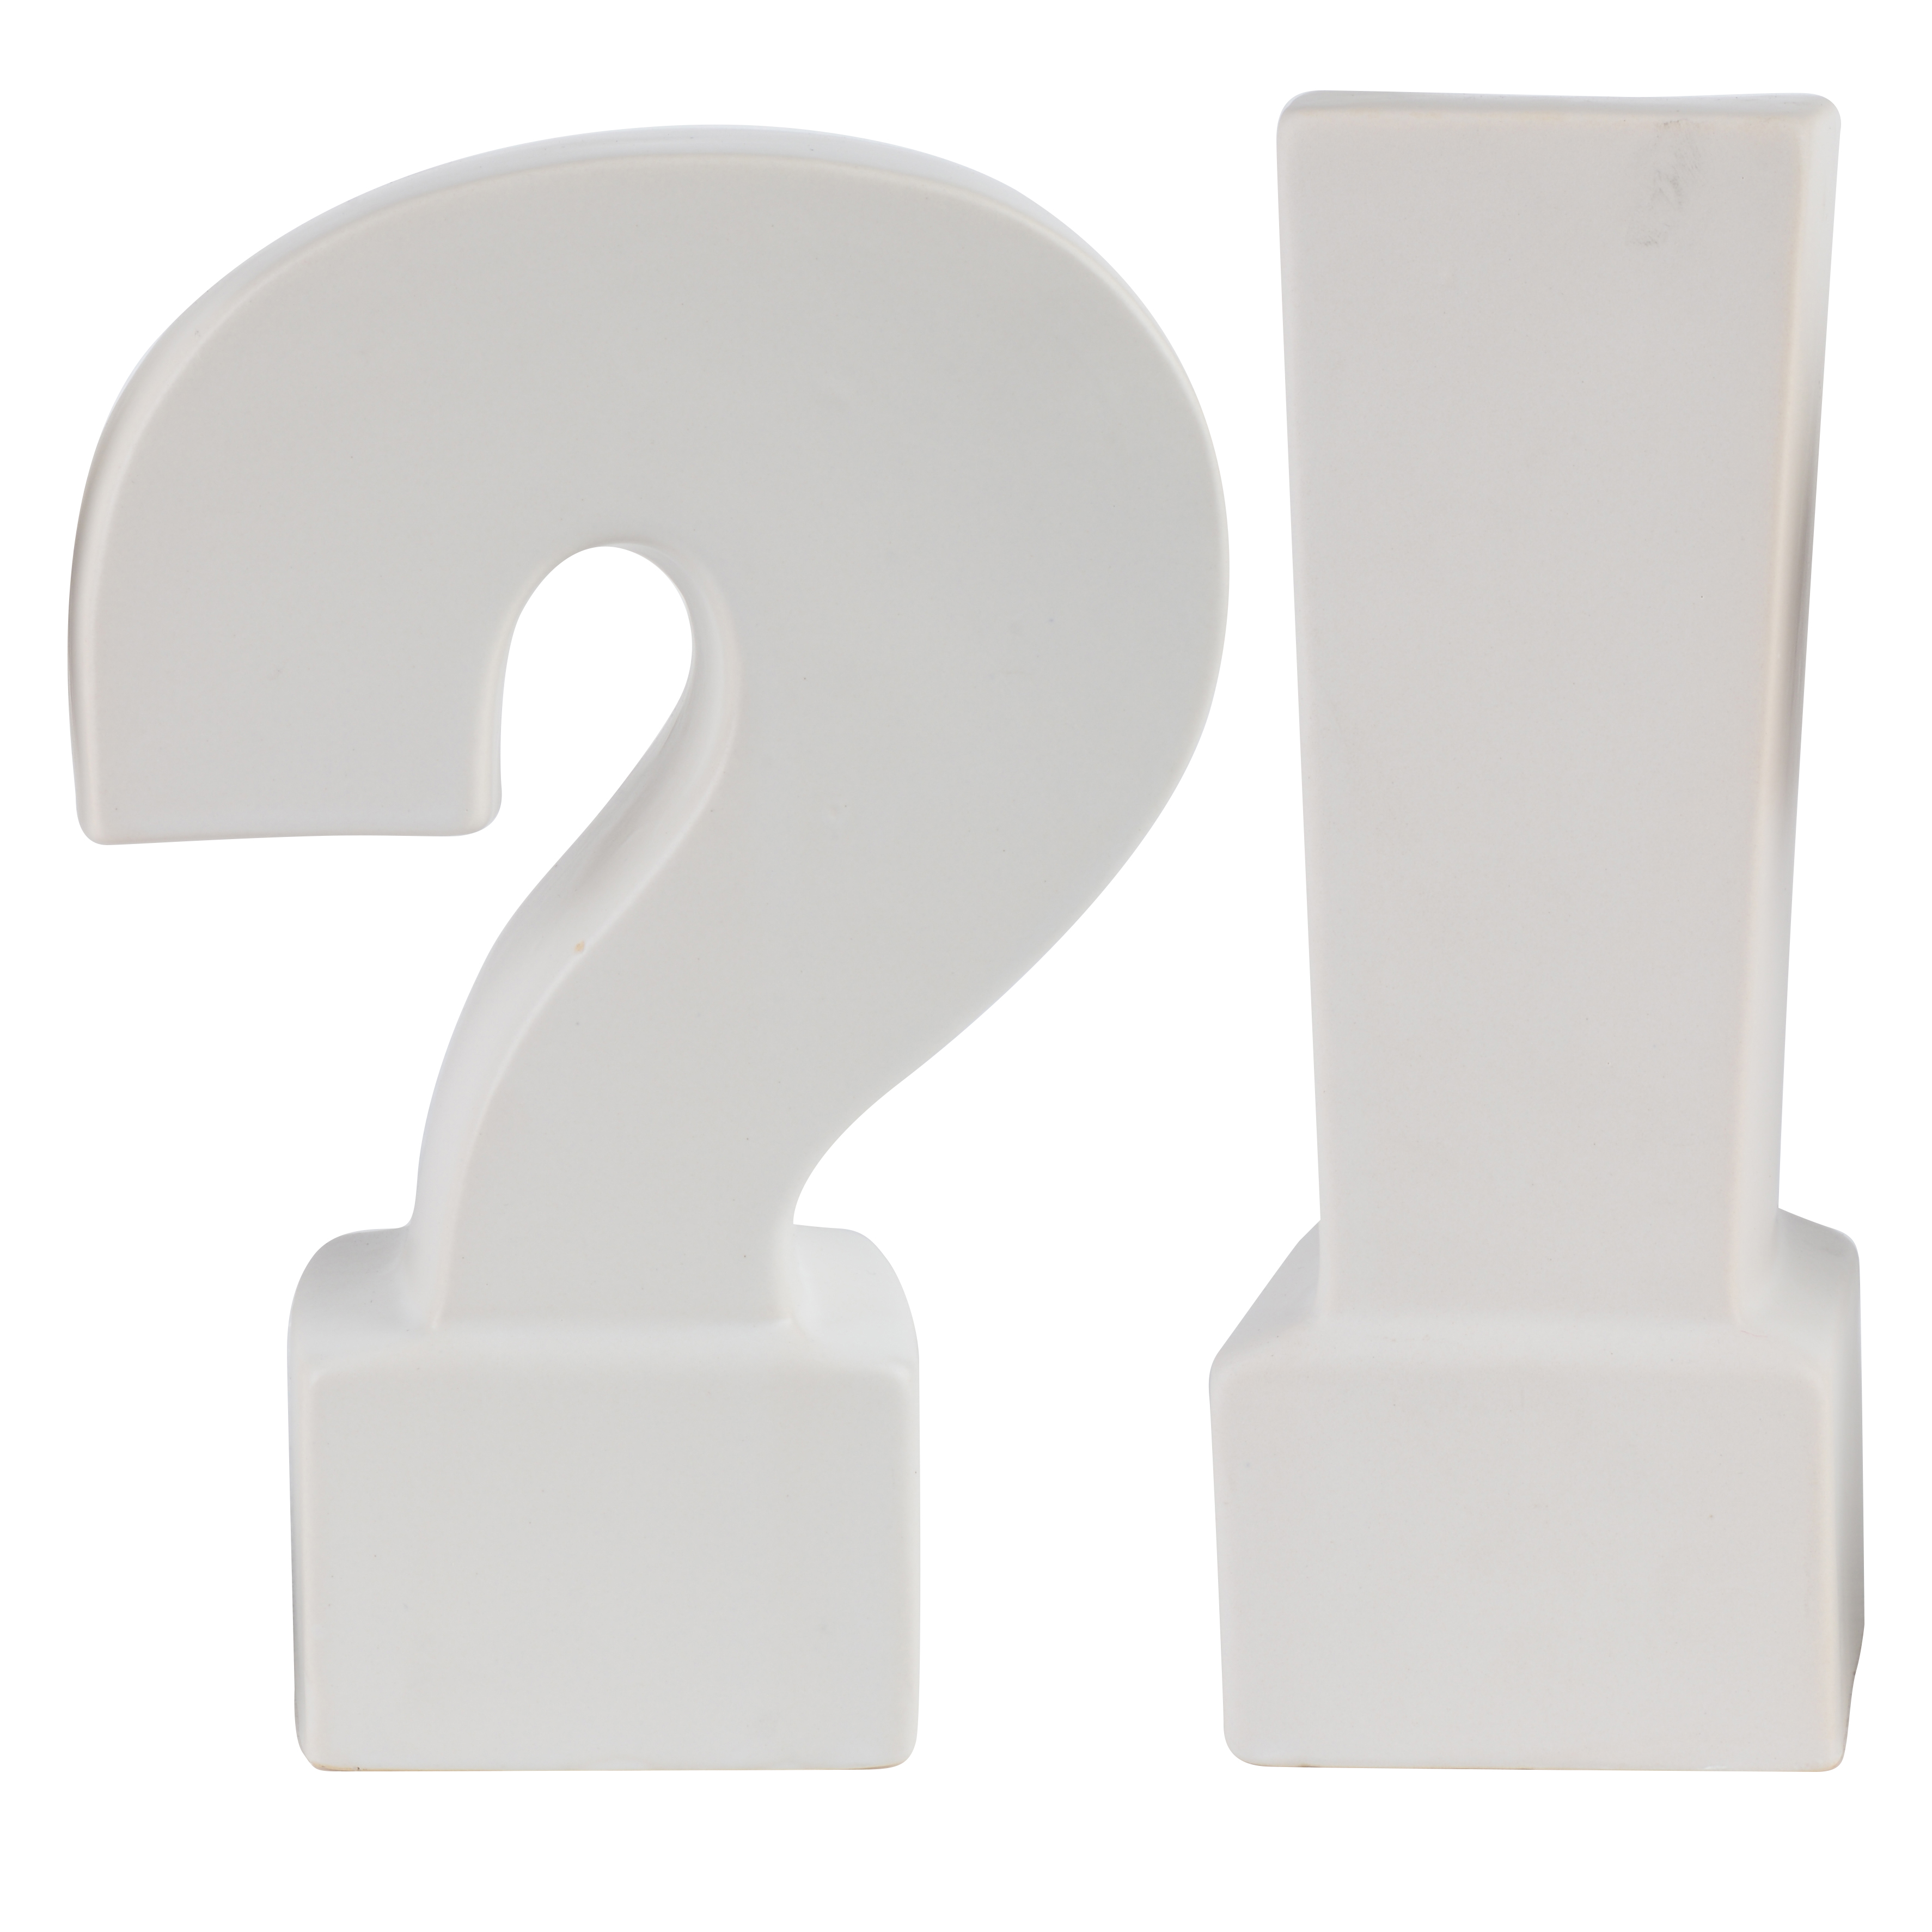 A&B Home Question & Exclamation Mark Bookends, Gold, Set of 2 by A&B Home